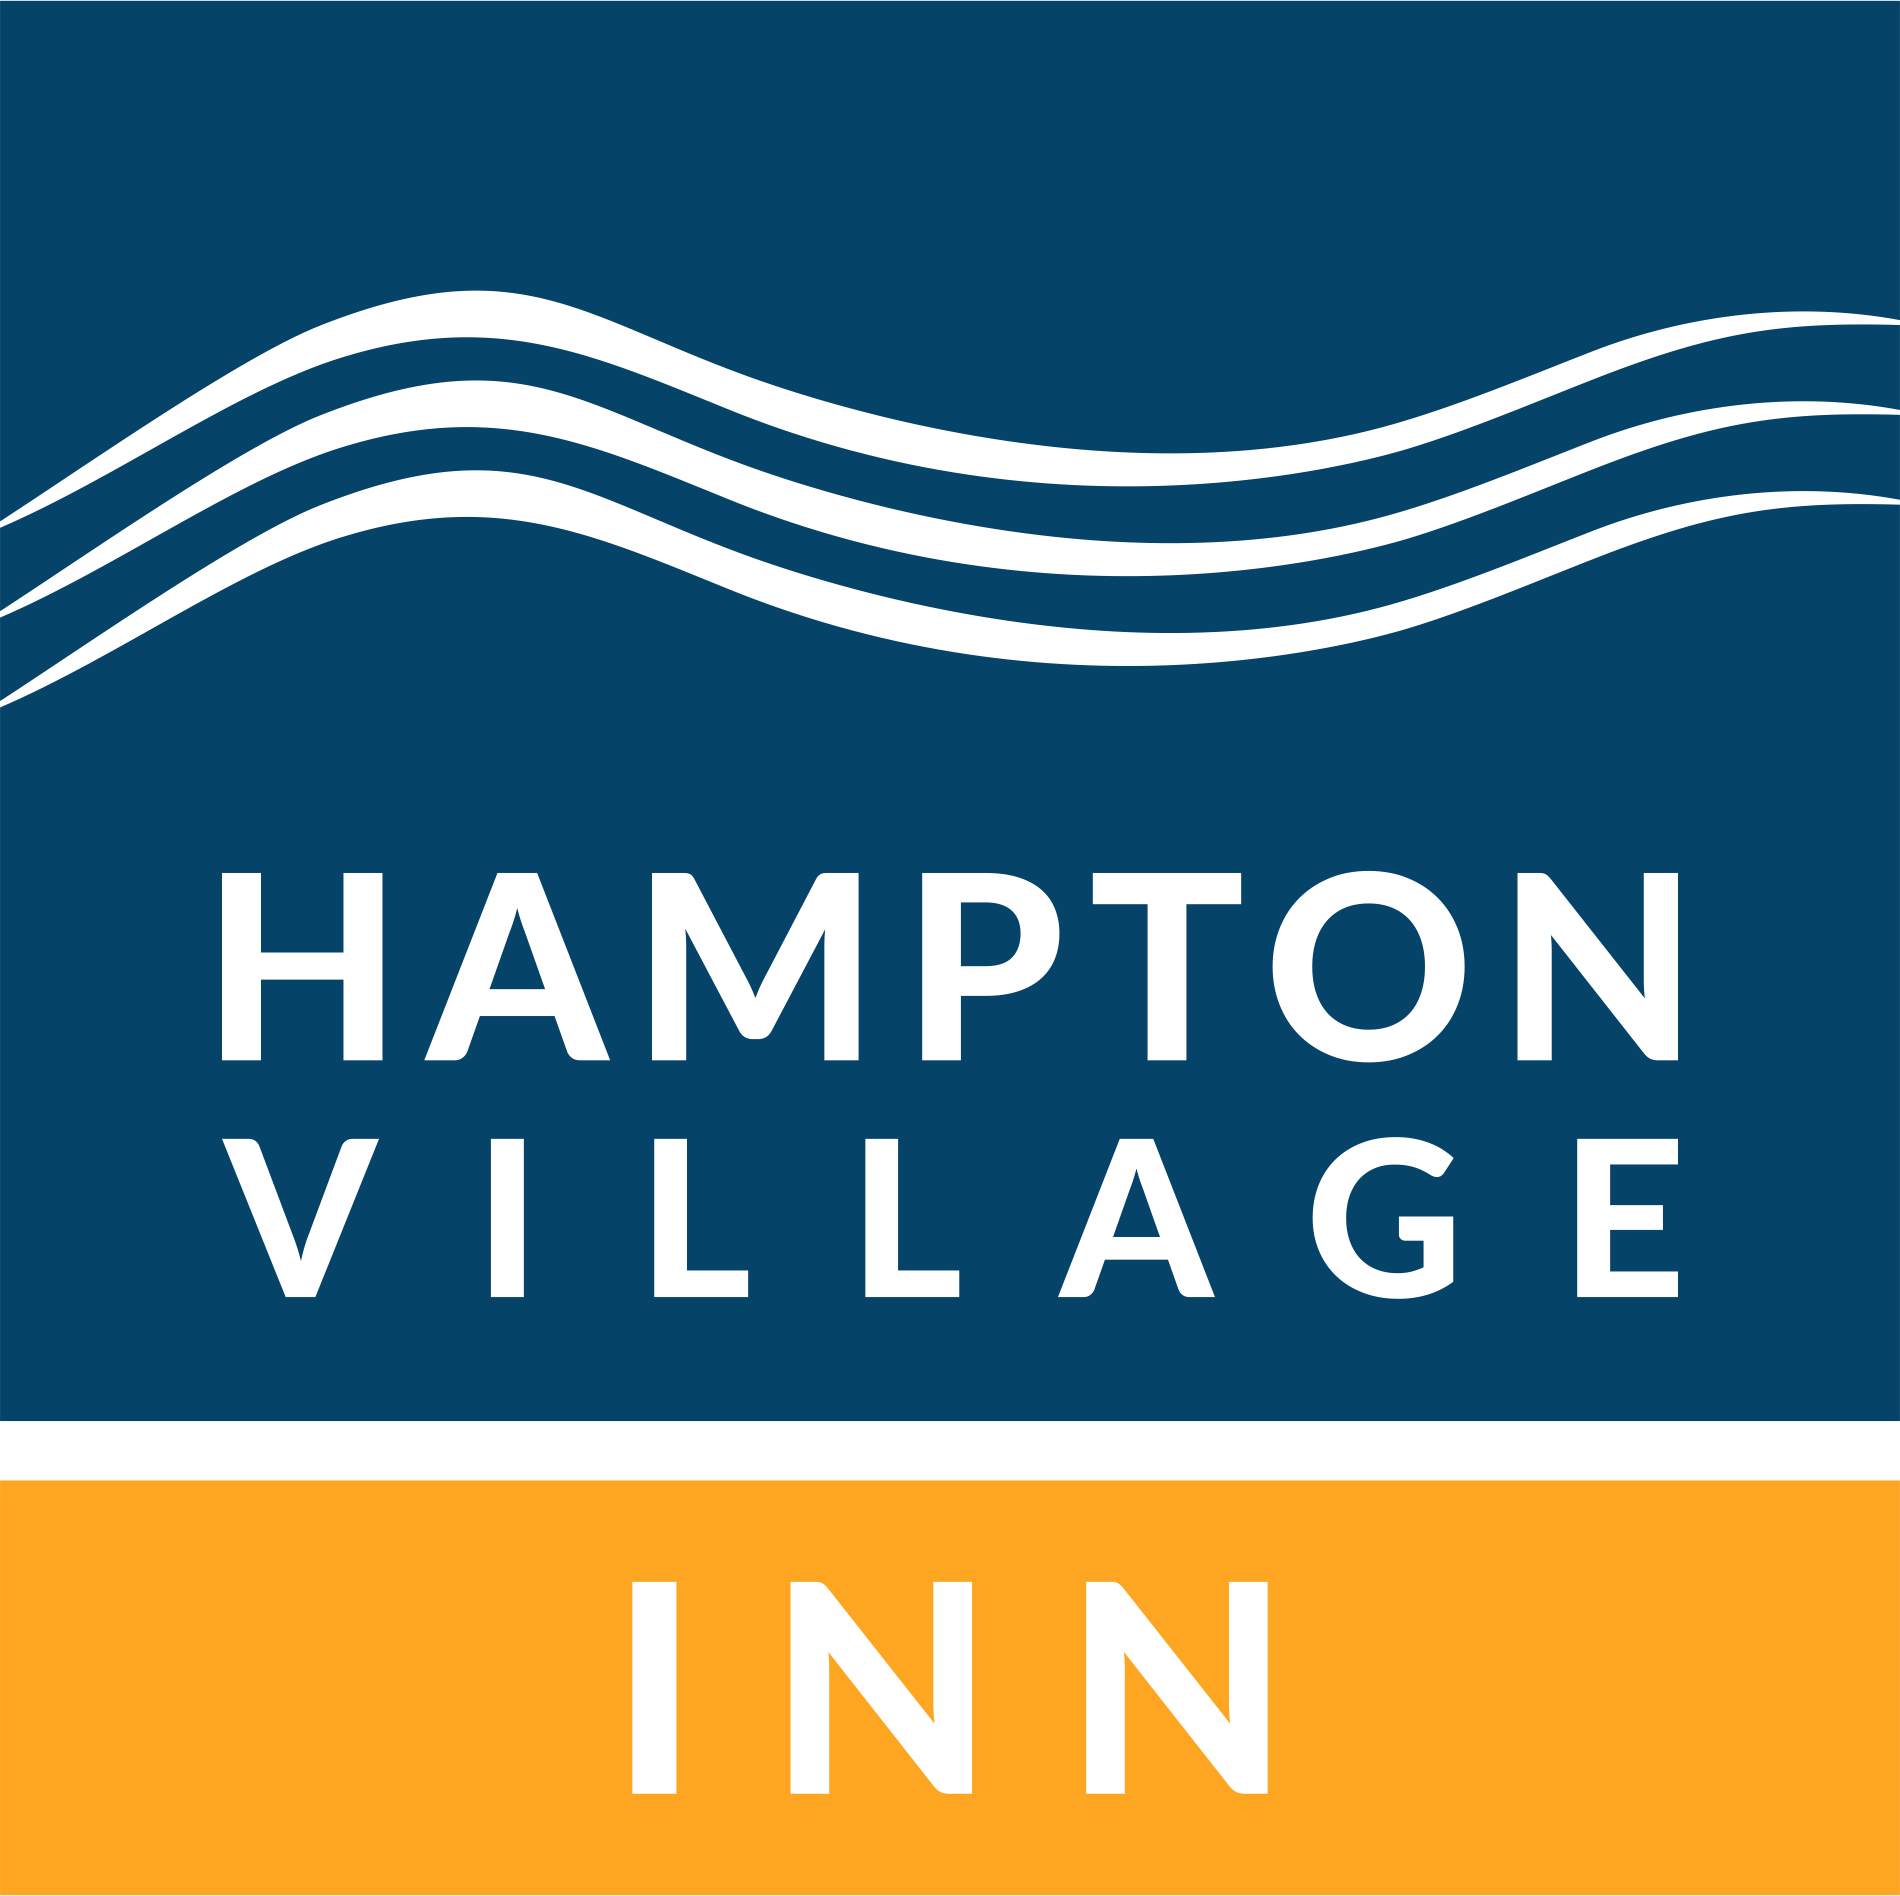 Hampton Village Inn